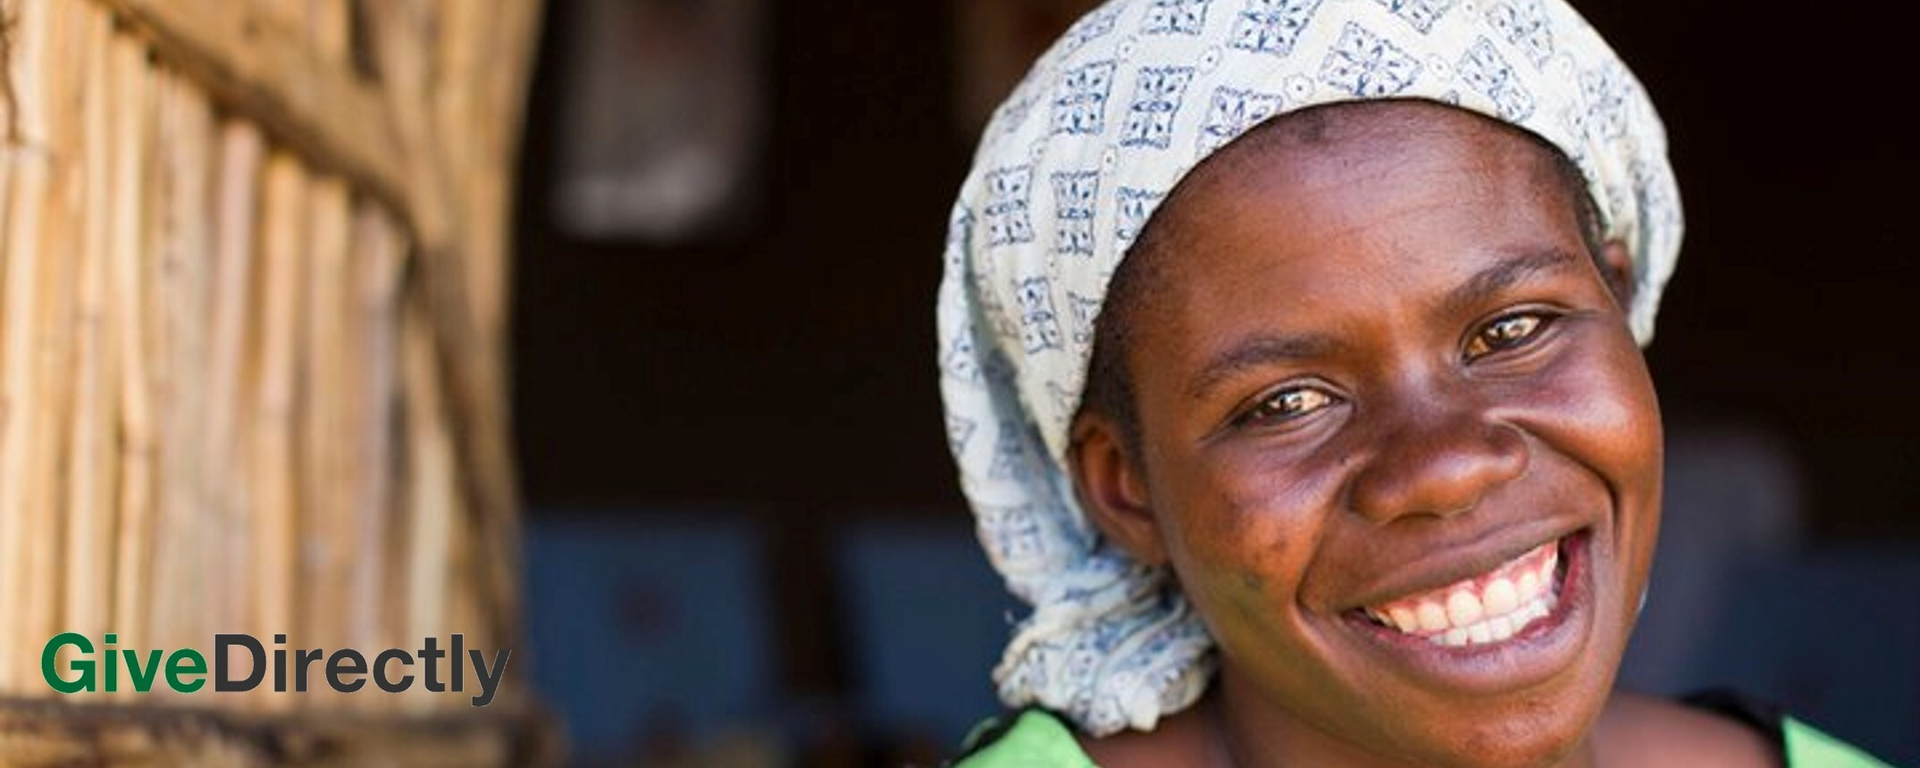 GiveDirectly - Senior Manager of Operations Movemeback African opportunity cover image